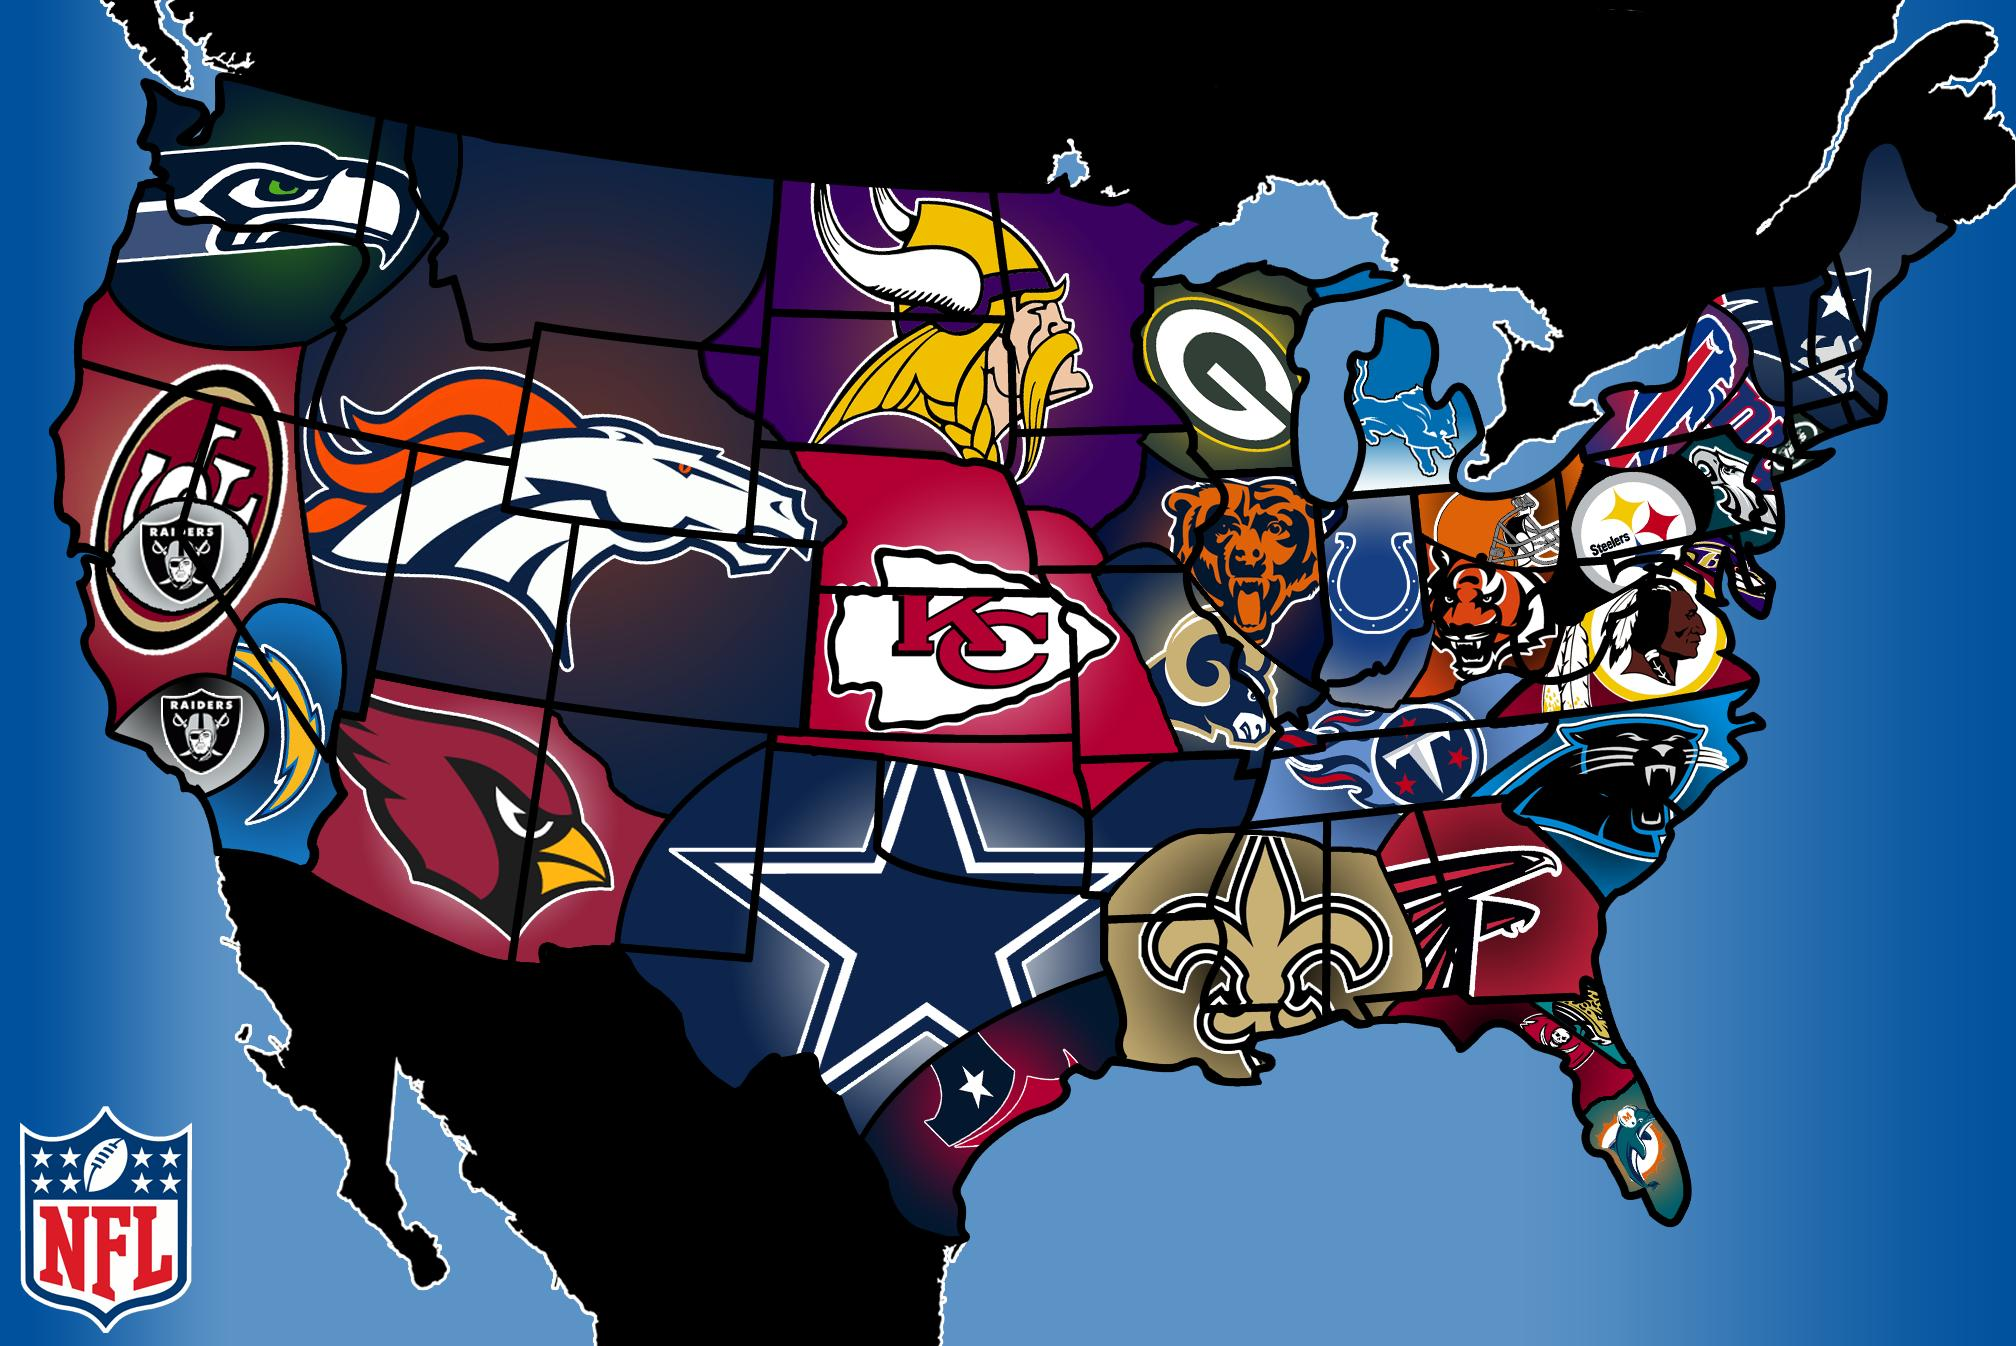 the US state borders were redrawn according to NFL team allegiances 2016x1346